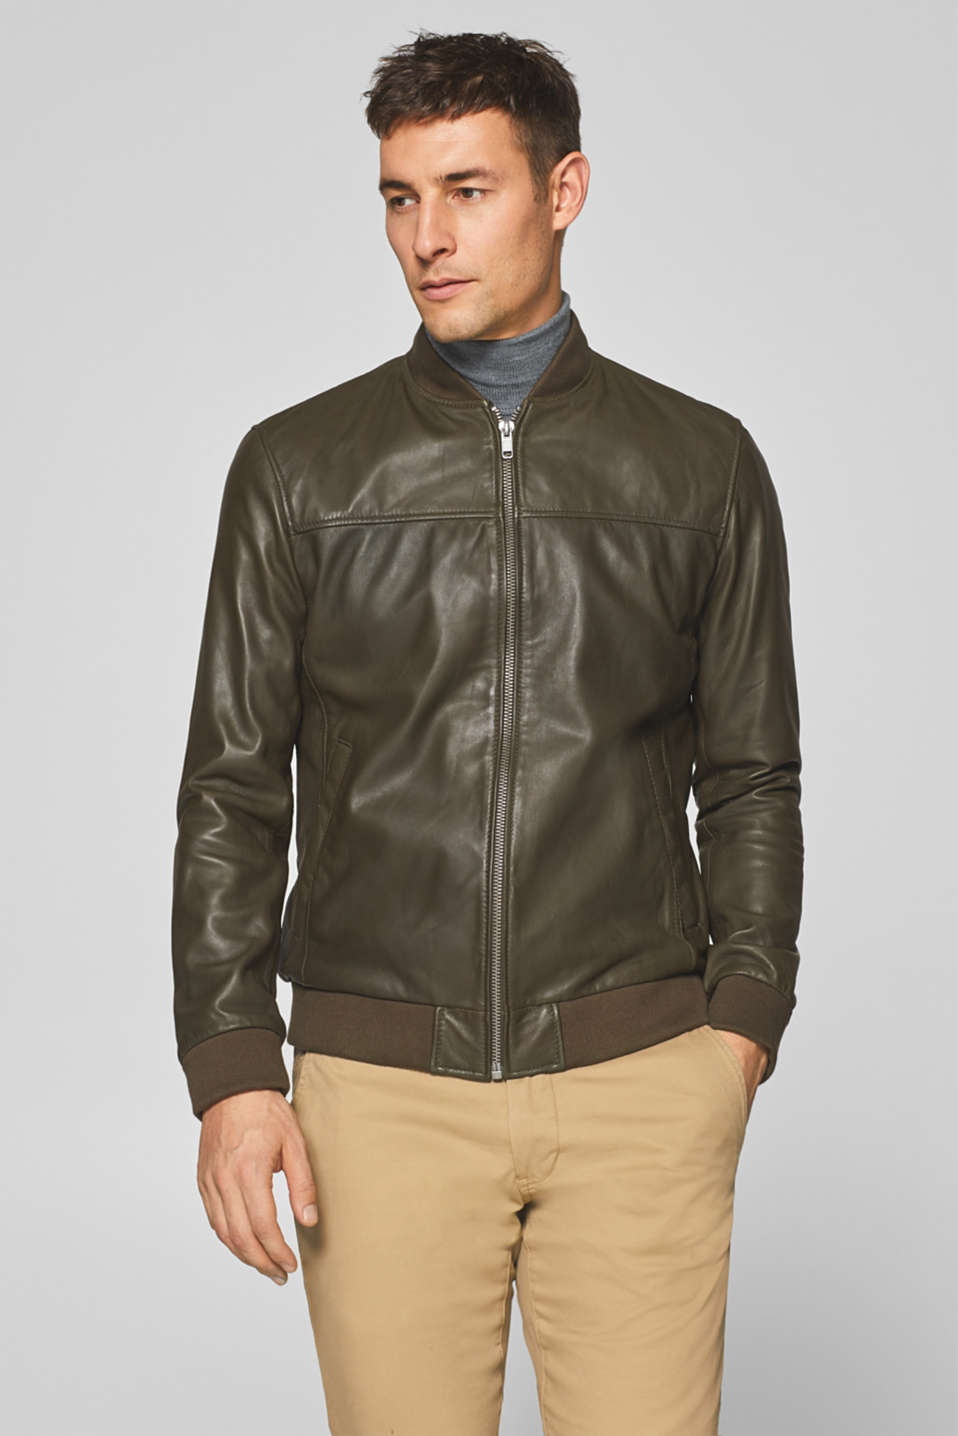 Esprit - Bomber jacket with knitted trims, in nappa leather